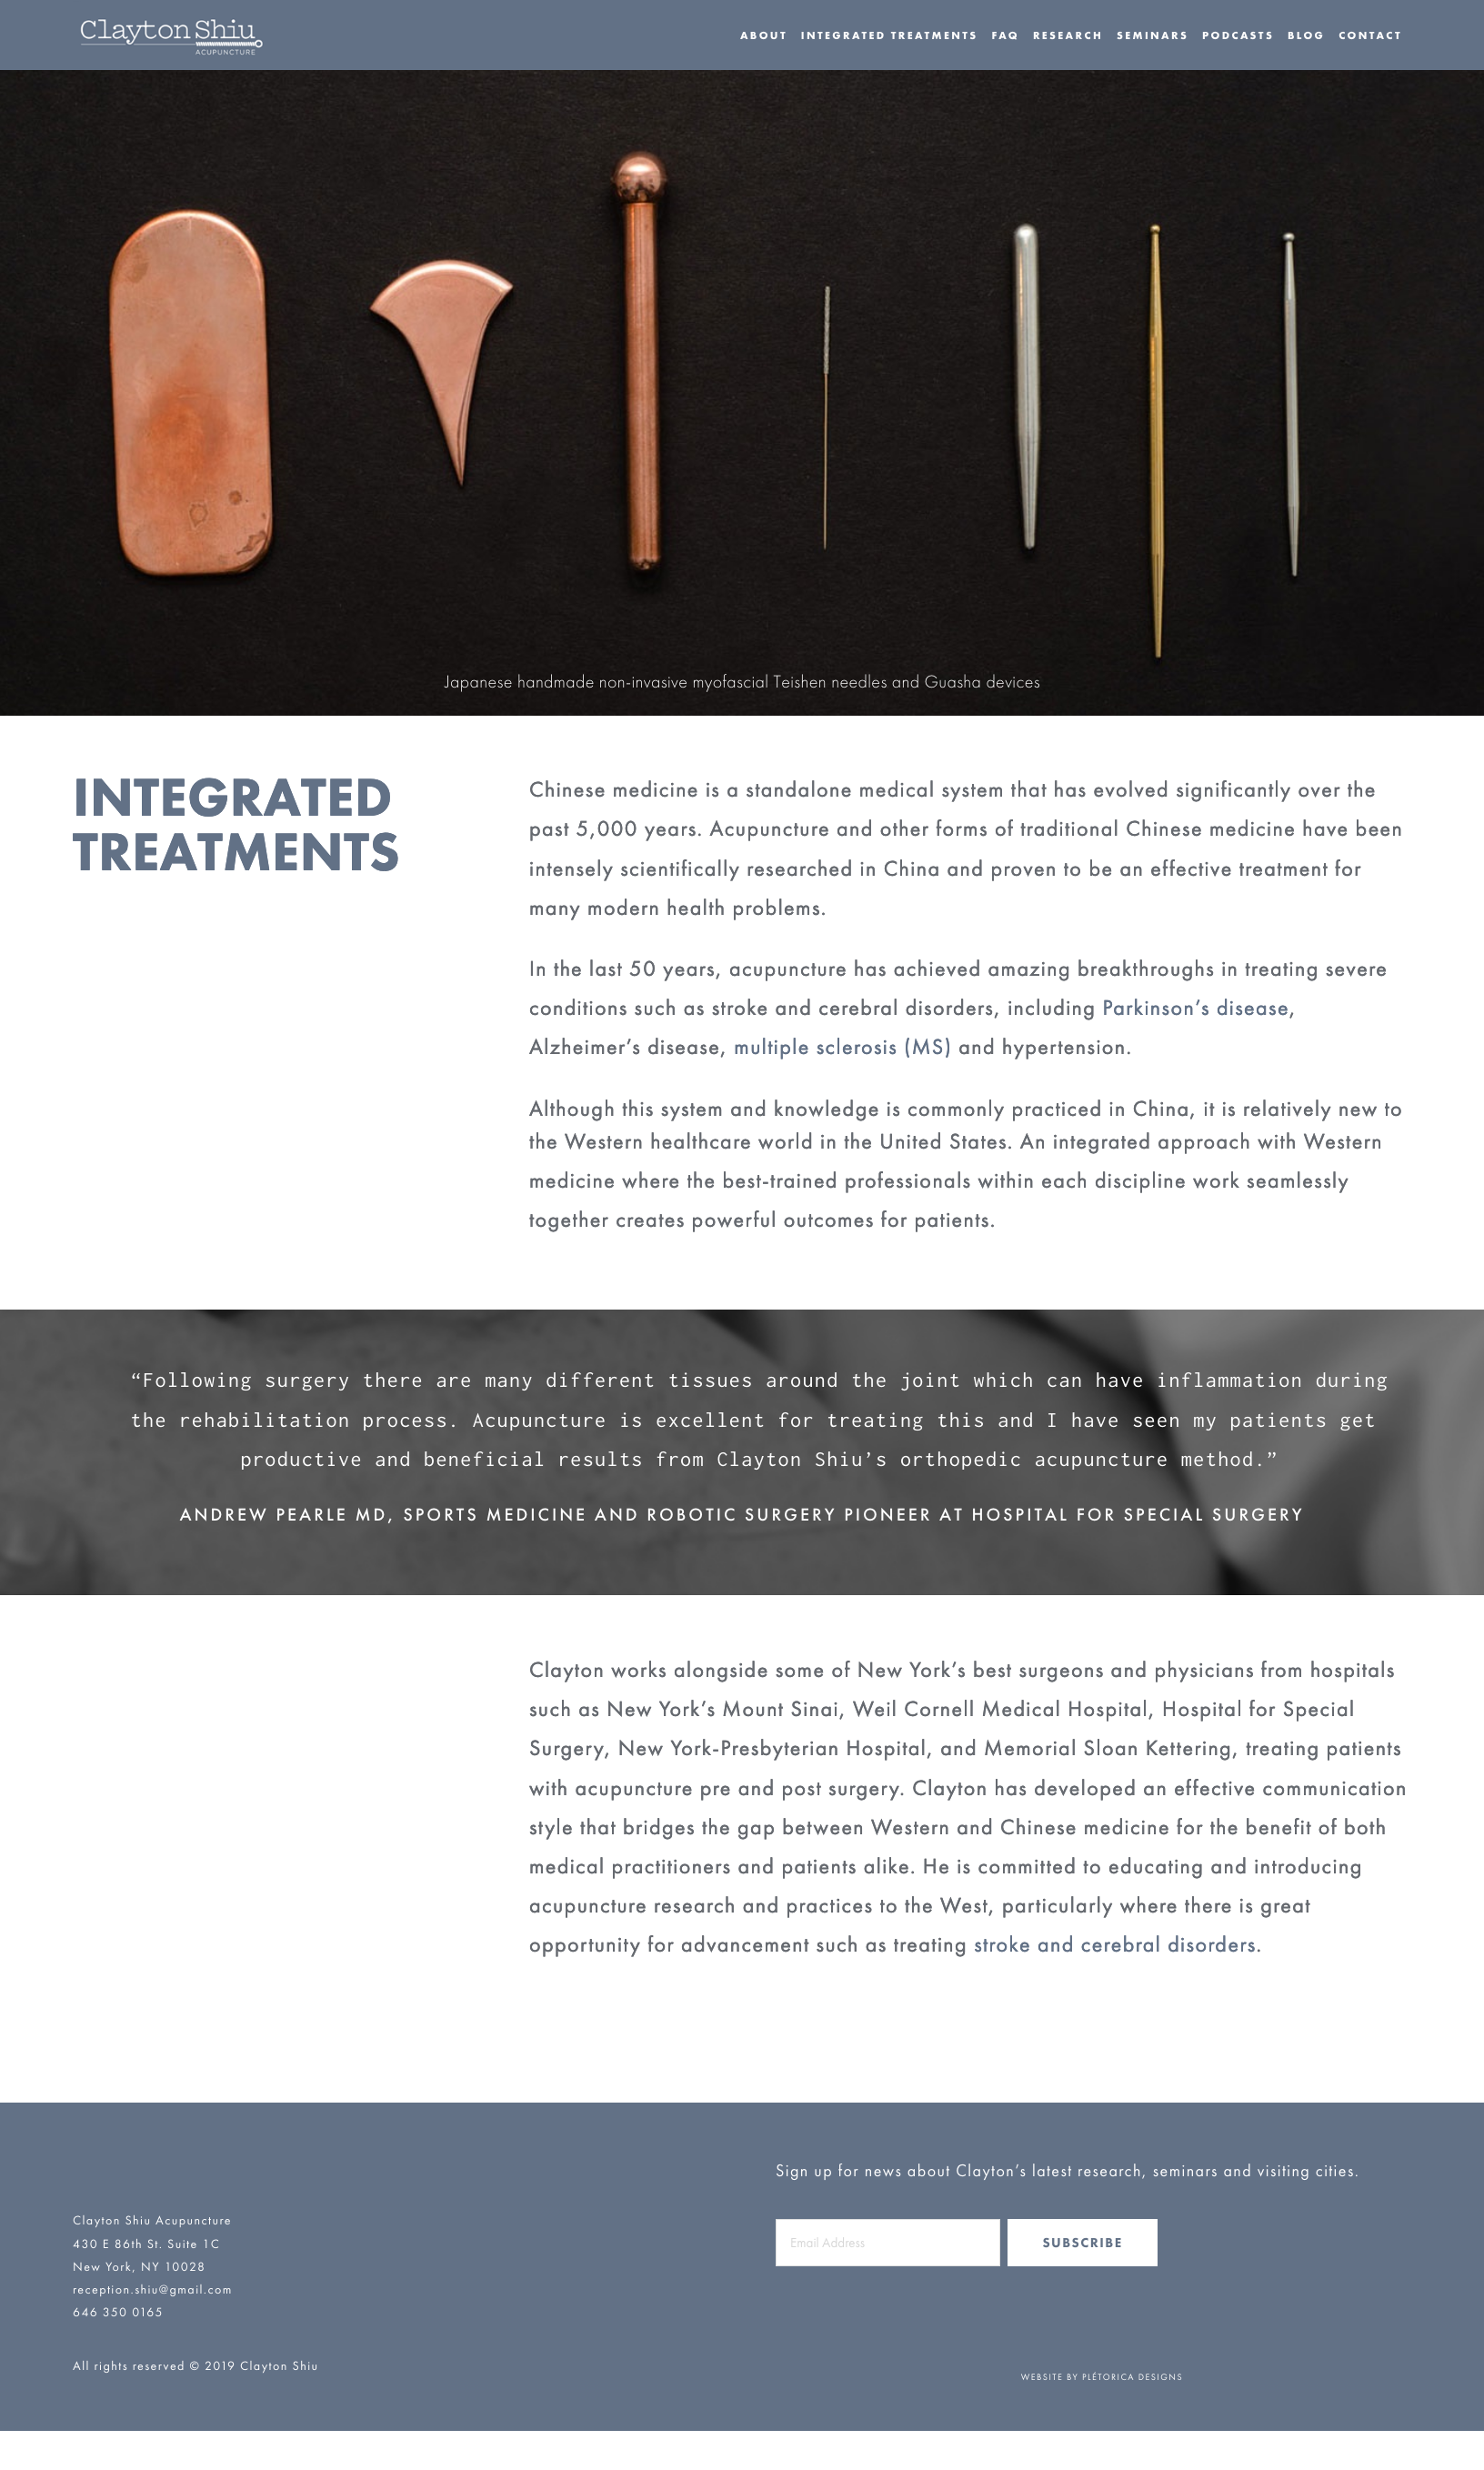 Screenshot_2019-03-17 INTEGRATED TREATMENTS — Clayton Shiu Acupuncture copy.png